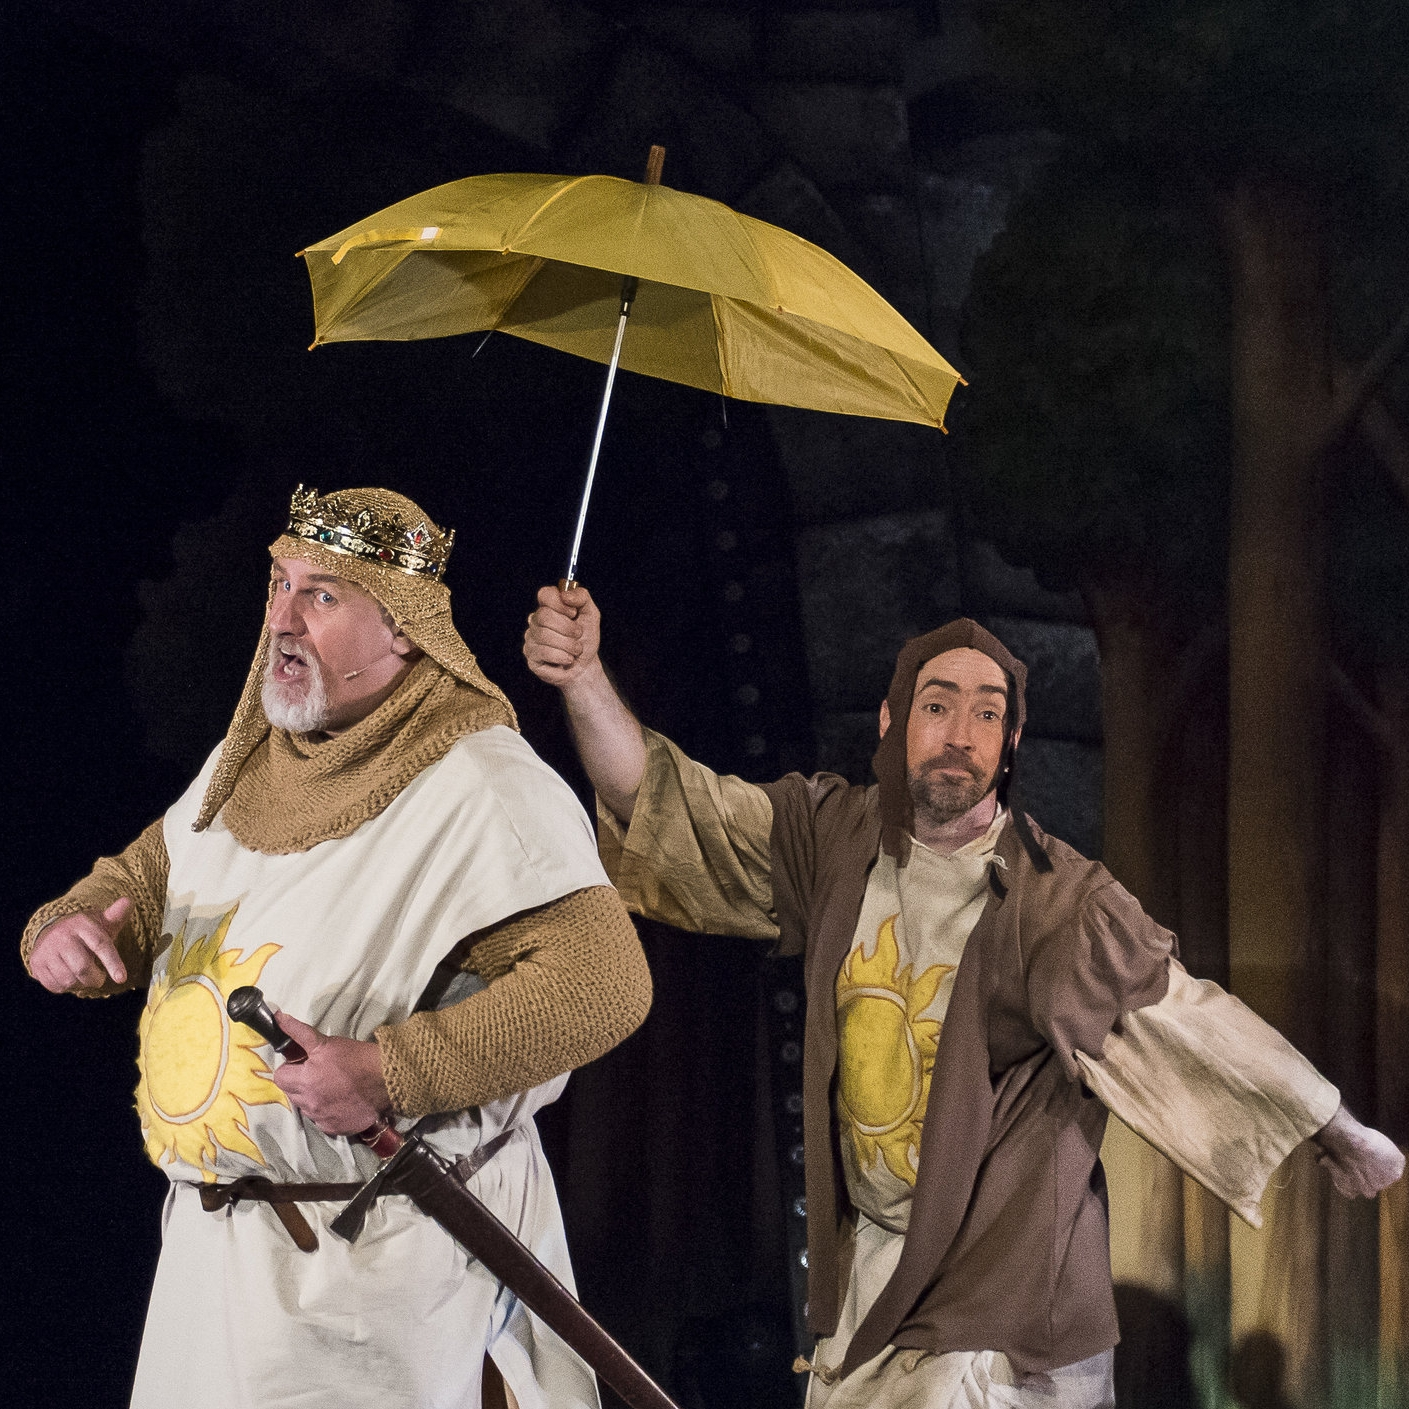 Colin Flaherty as King Arthur and Richard Bond as Patsy